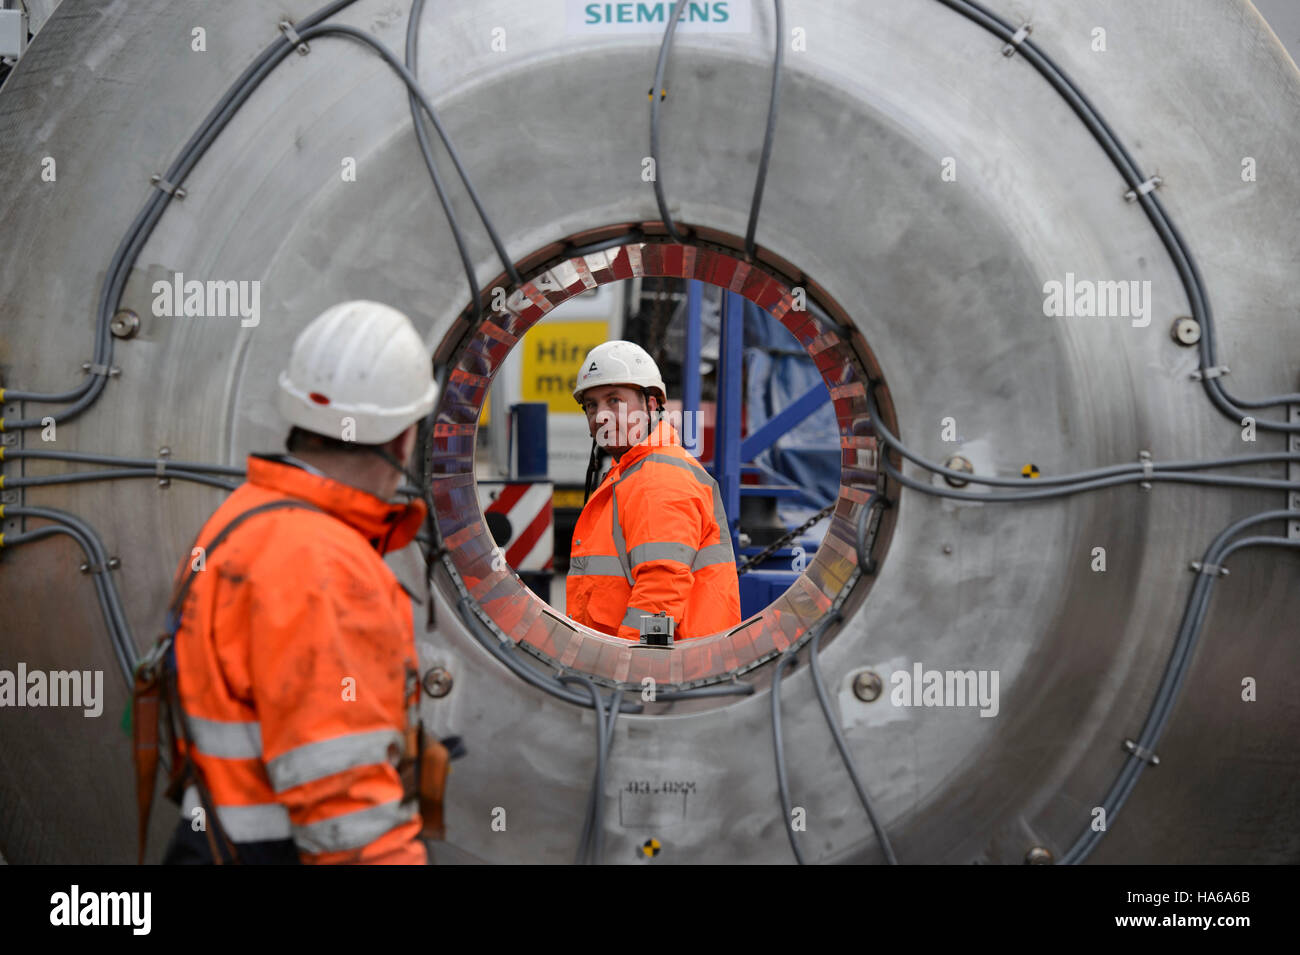 Workers inspect the inside of an ultra-powerful £10 Stock Photo